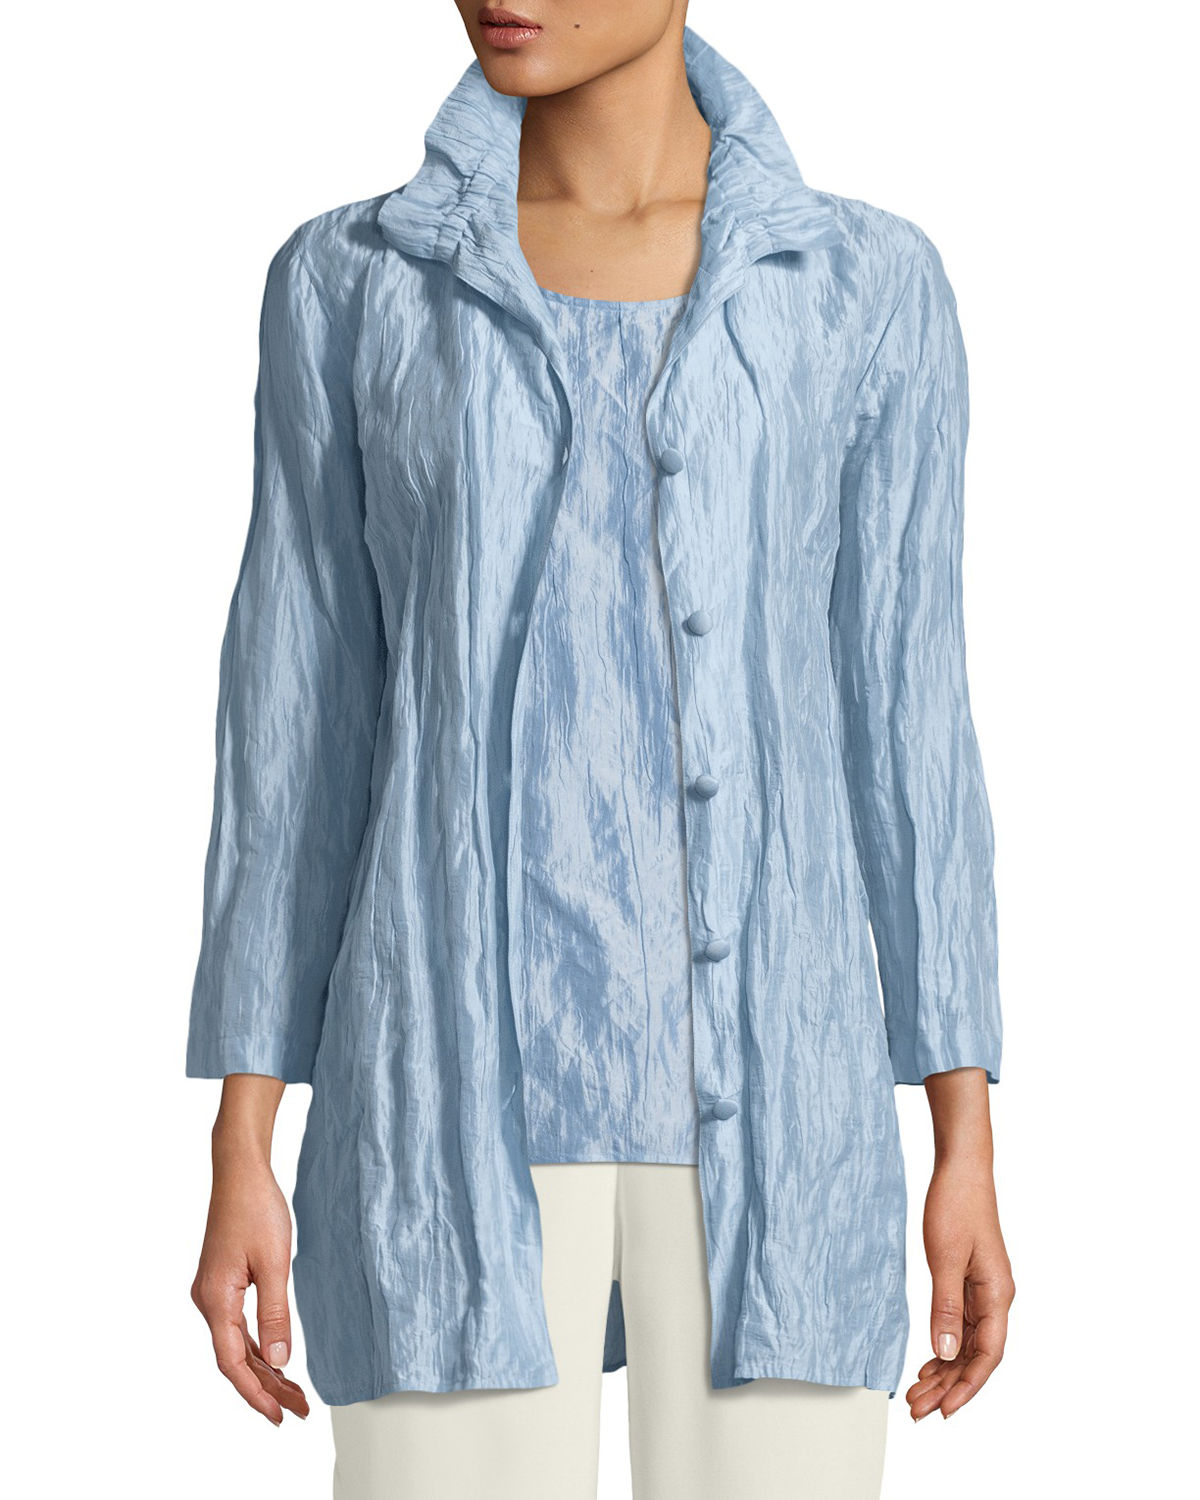 Ruched-Collar Crinkled Jacket, Plus Size